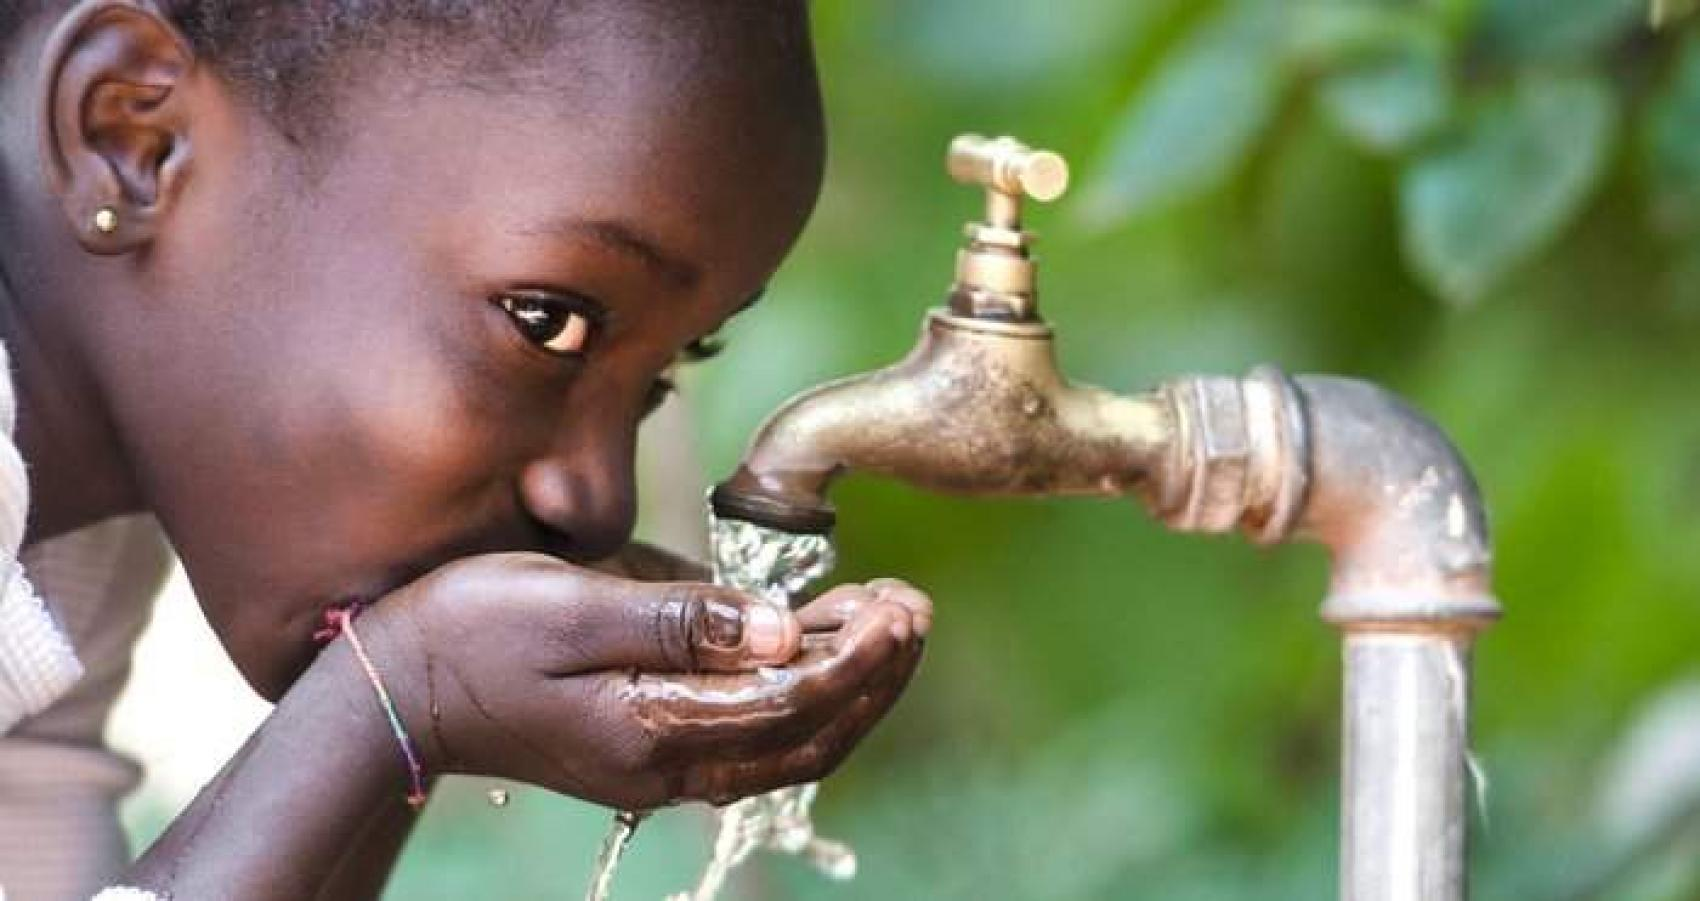 Must Read: Wisdom: Not All Water Is Good Water!